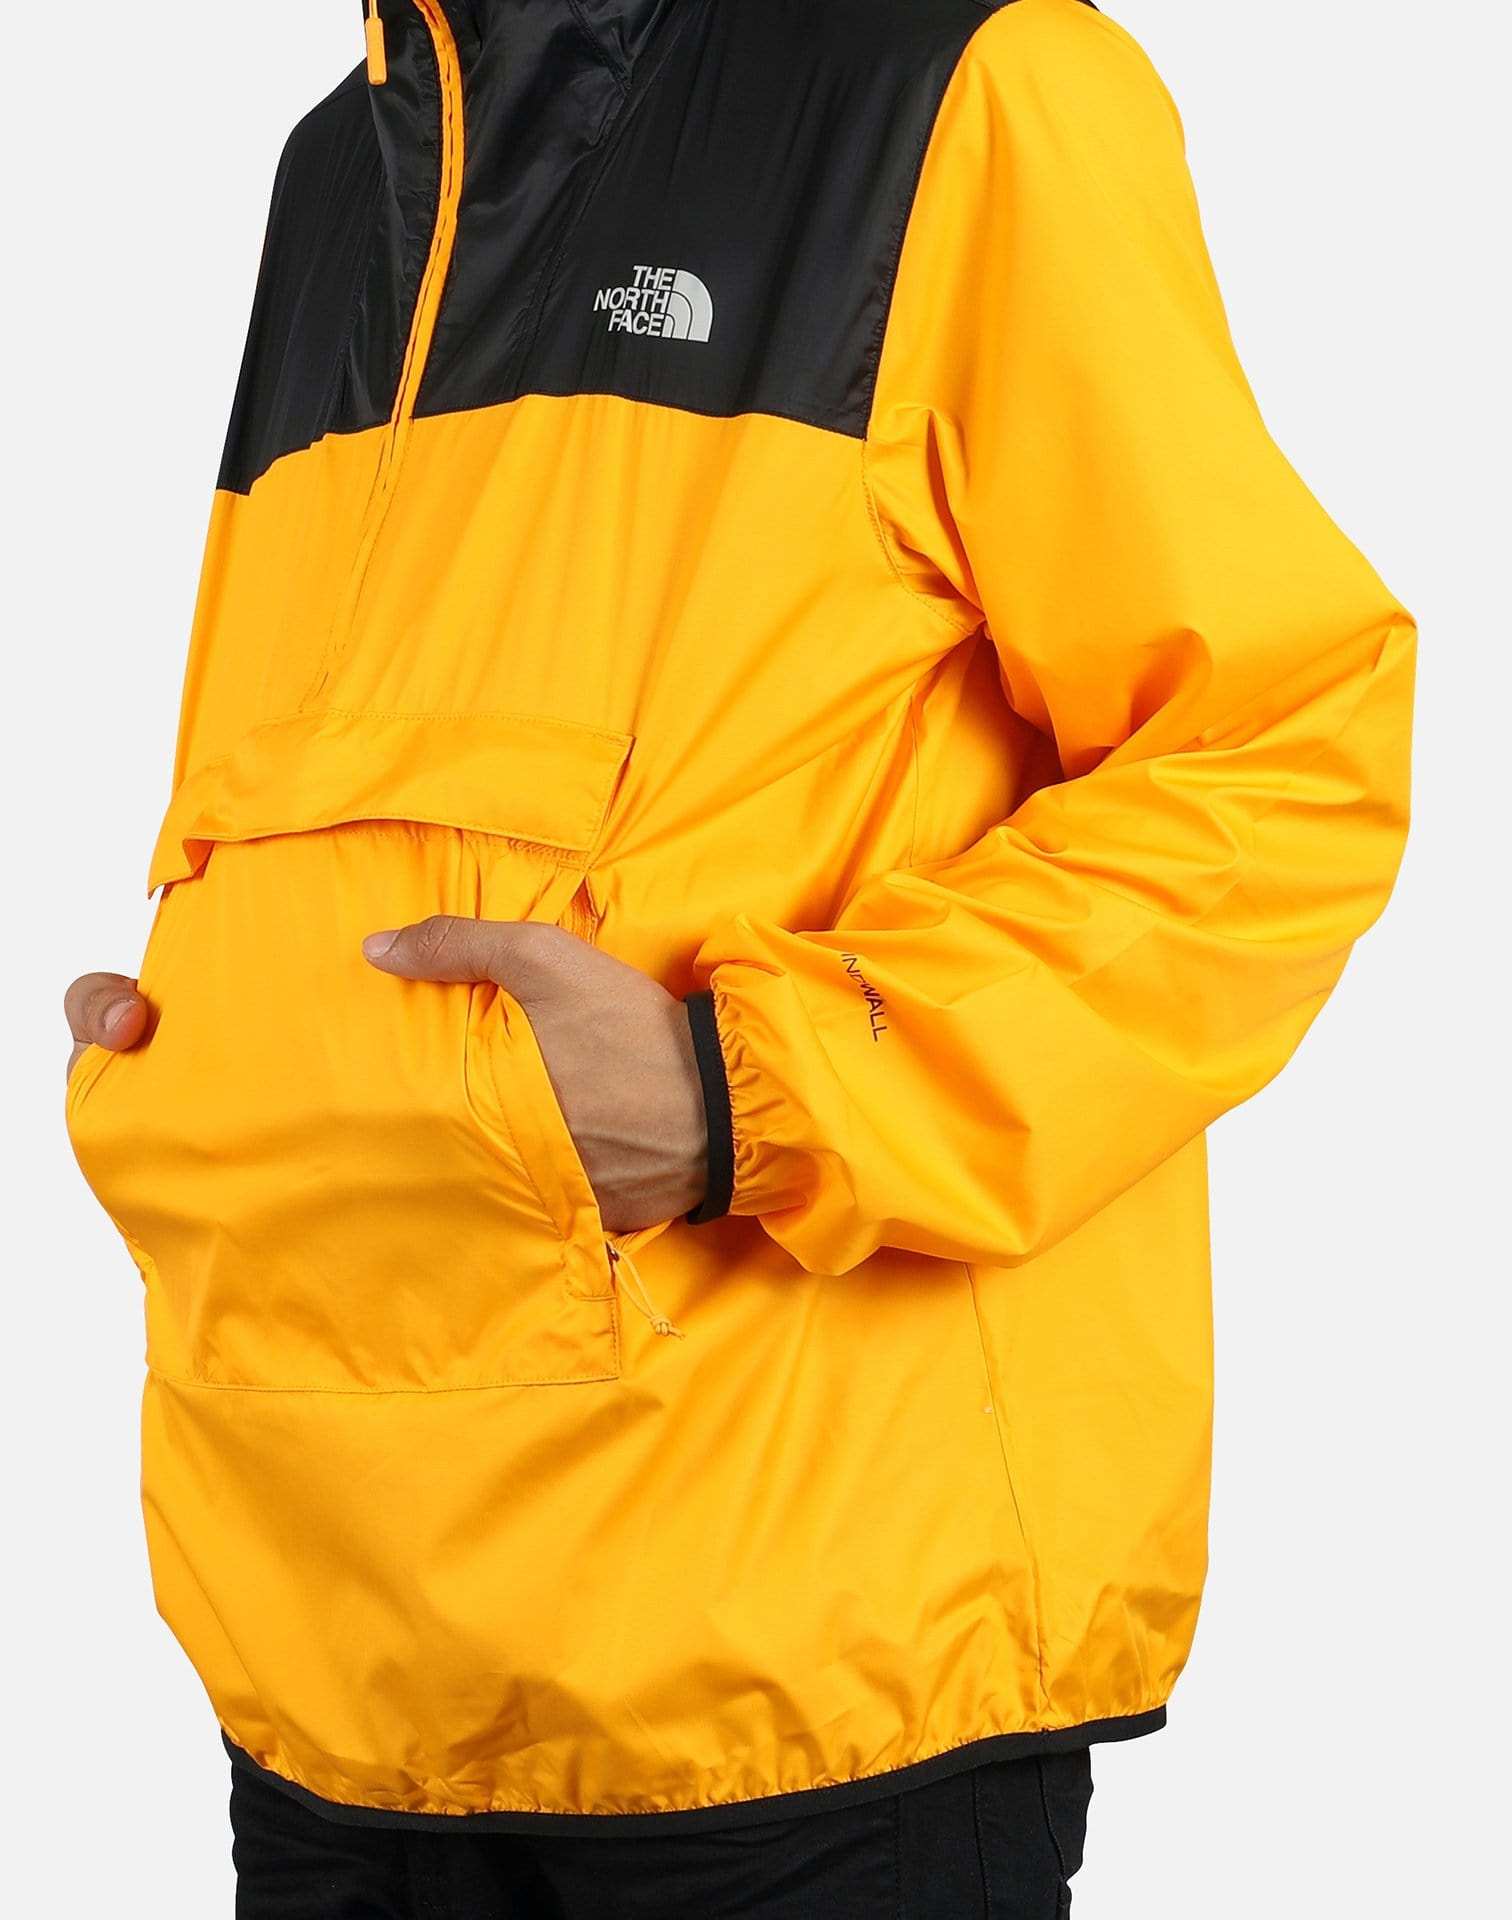 The North Face Men's Fanorak Jacket